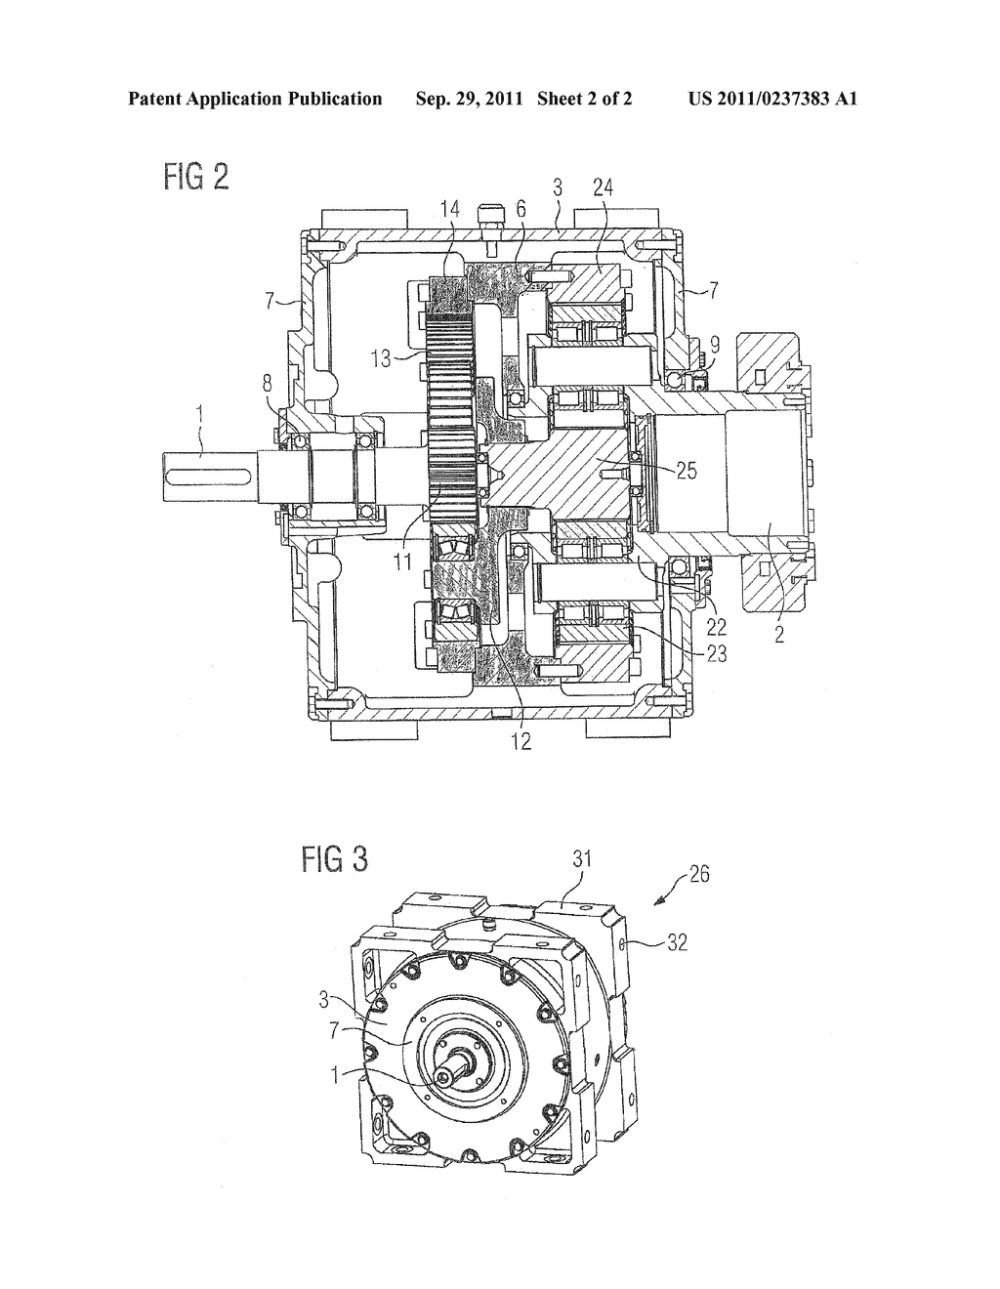 medium resolution of planetary gearbox diagram schematic and image 03 rh patentsencyclopedia com differential gear box schematic diagram schematic